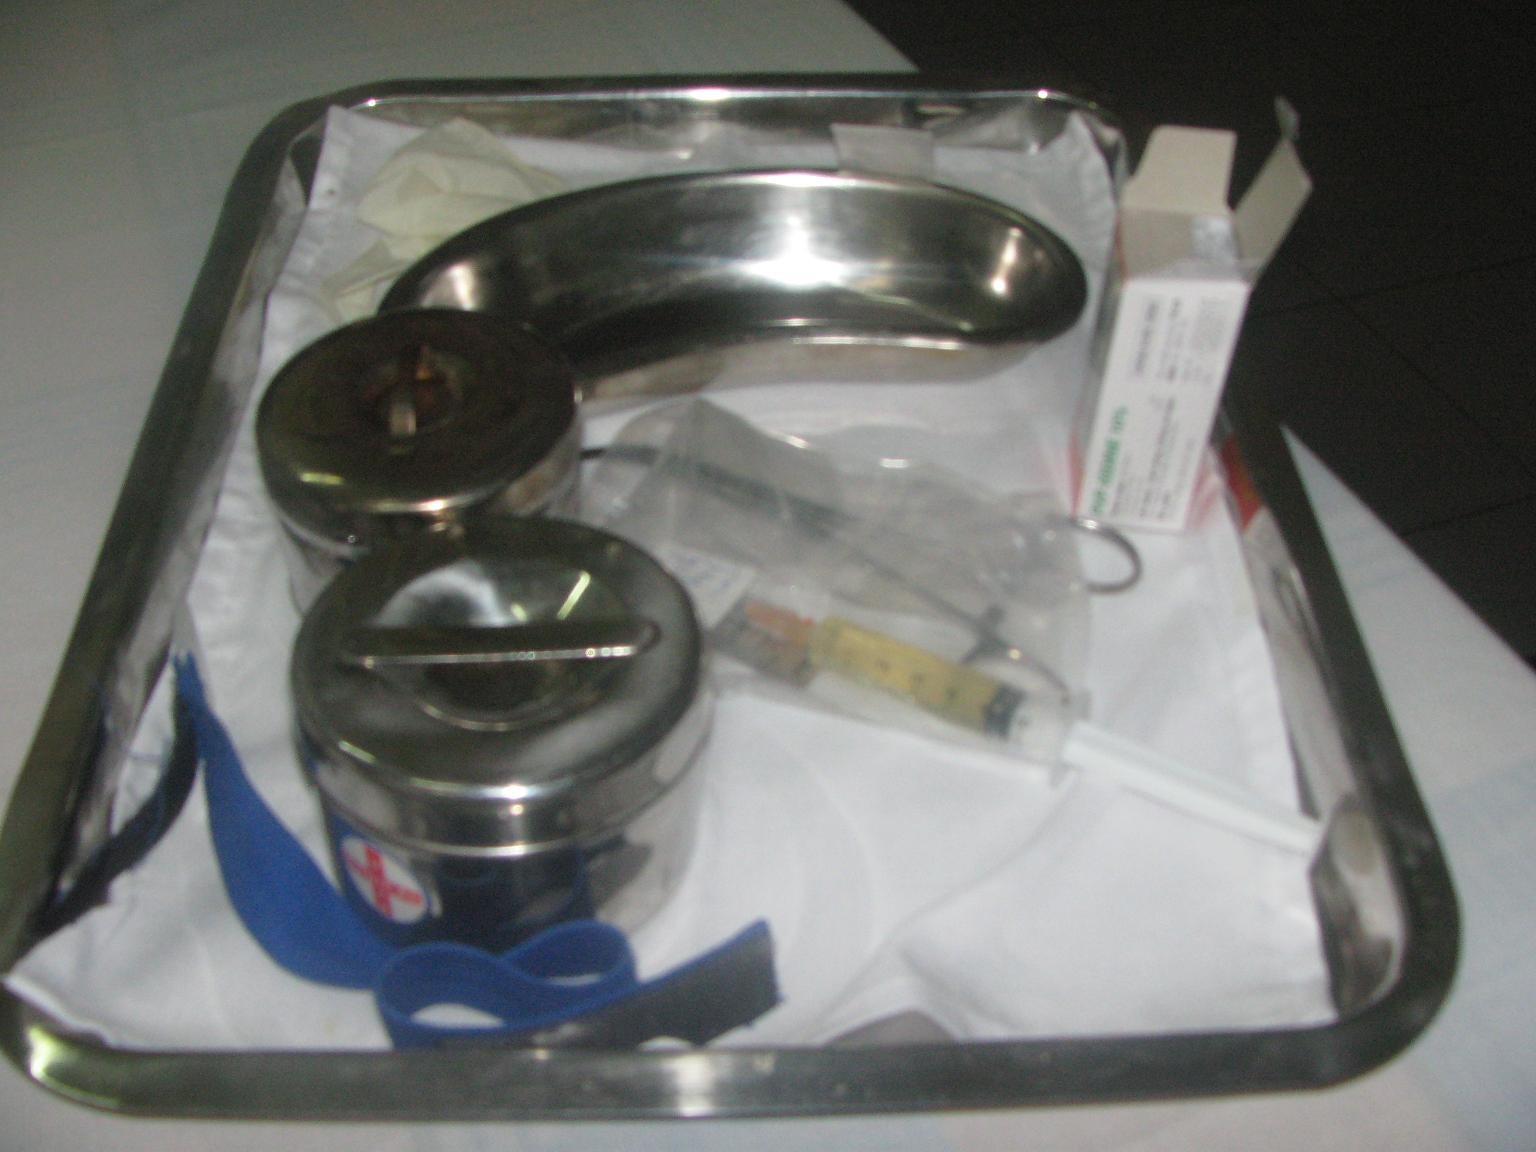 nursing kit syringe vietnam